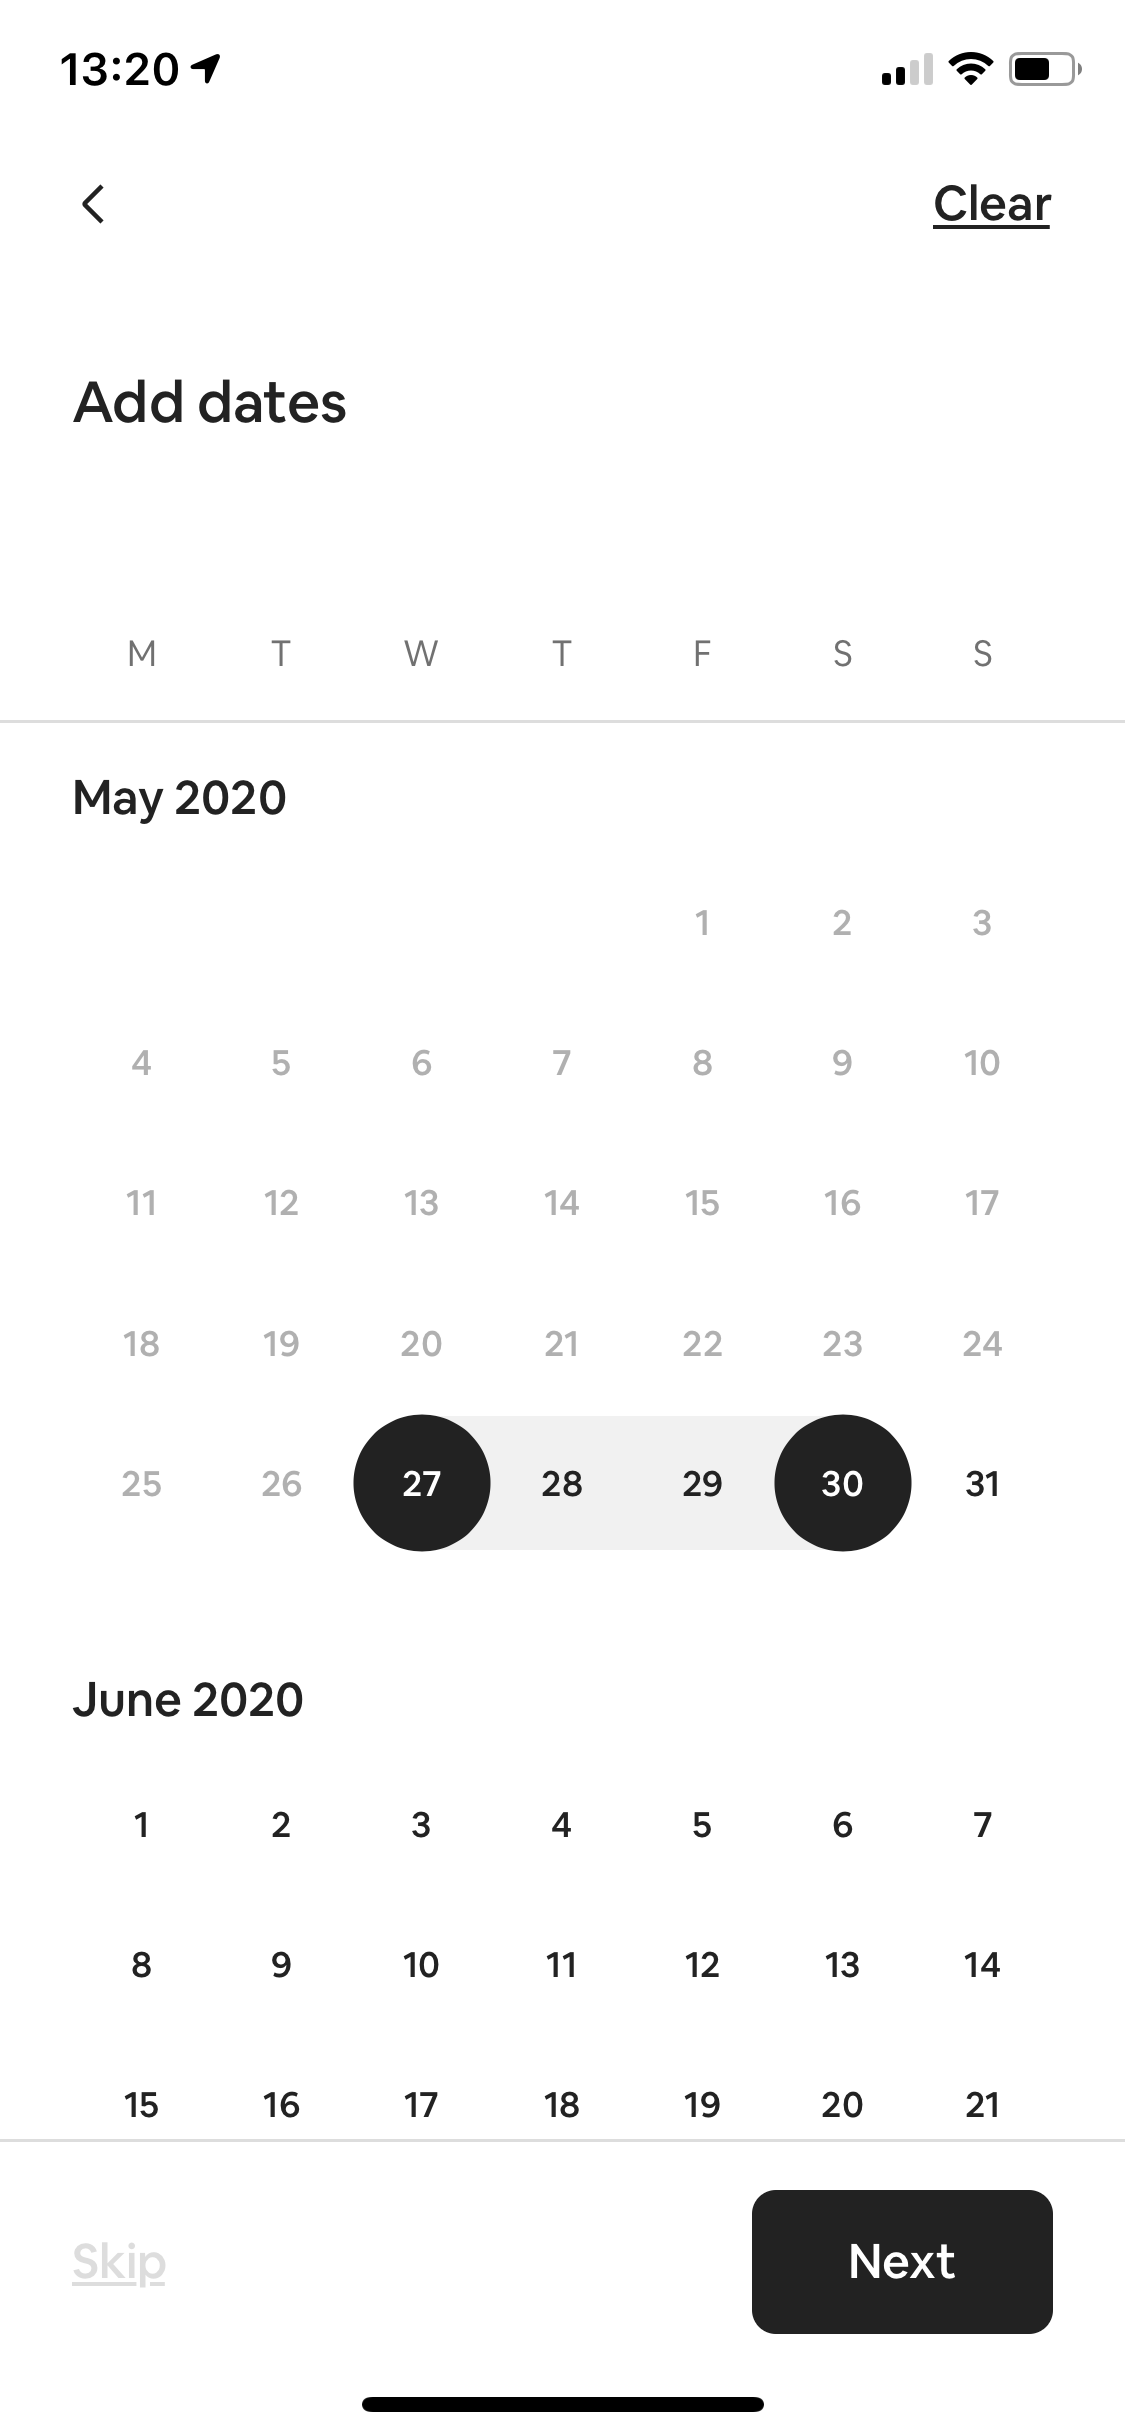 Add dates screenshot